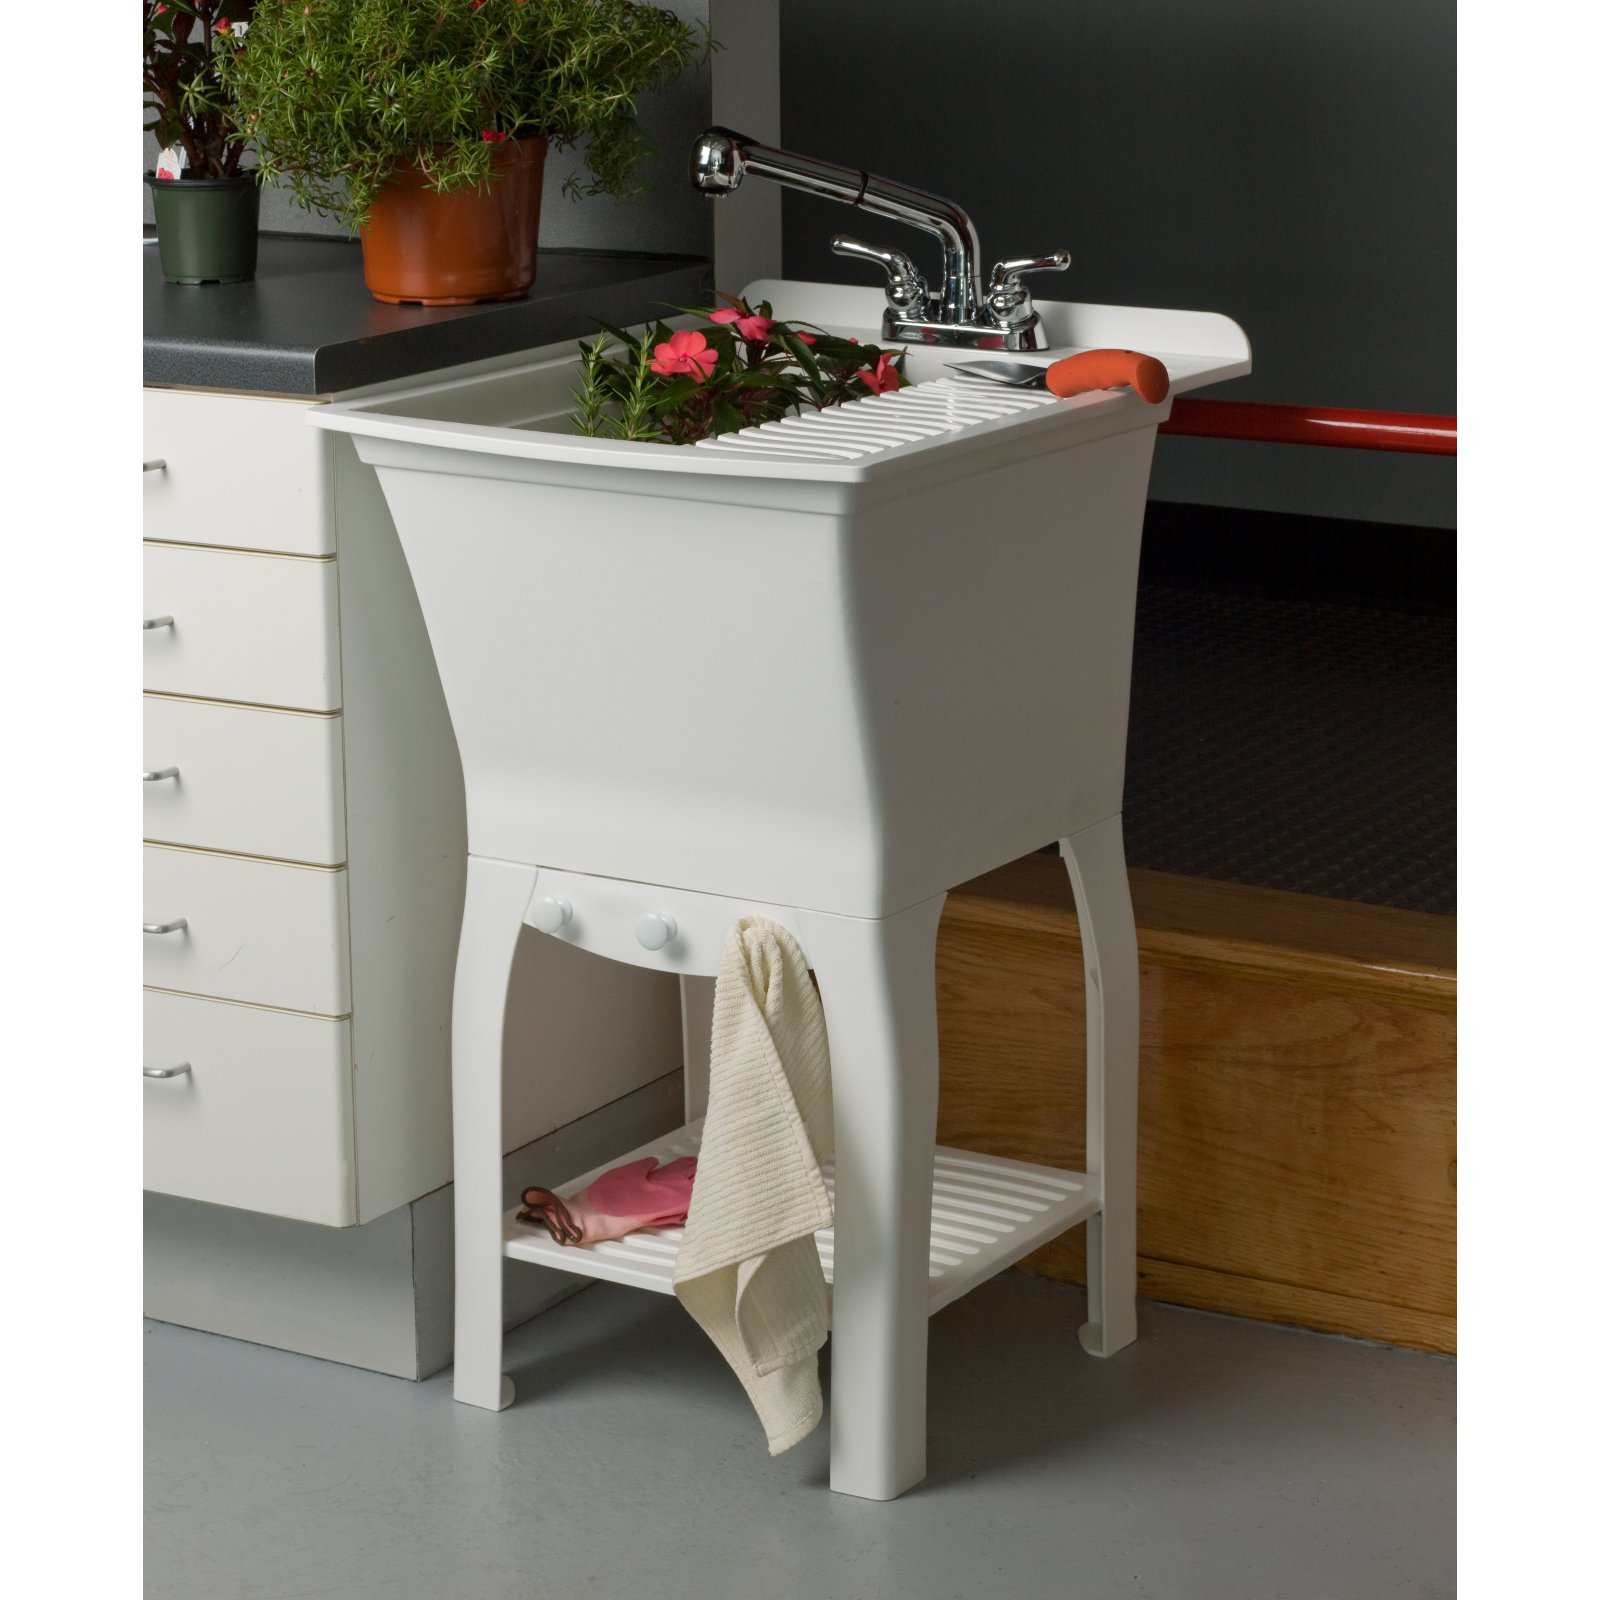 Cashel The Fitz Fully Loaded Utility Sink Kit Workstation - with Faucet